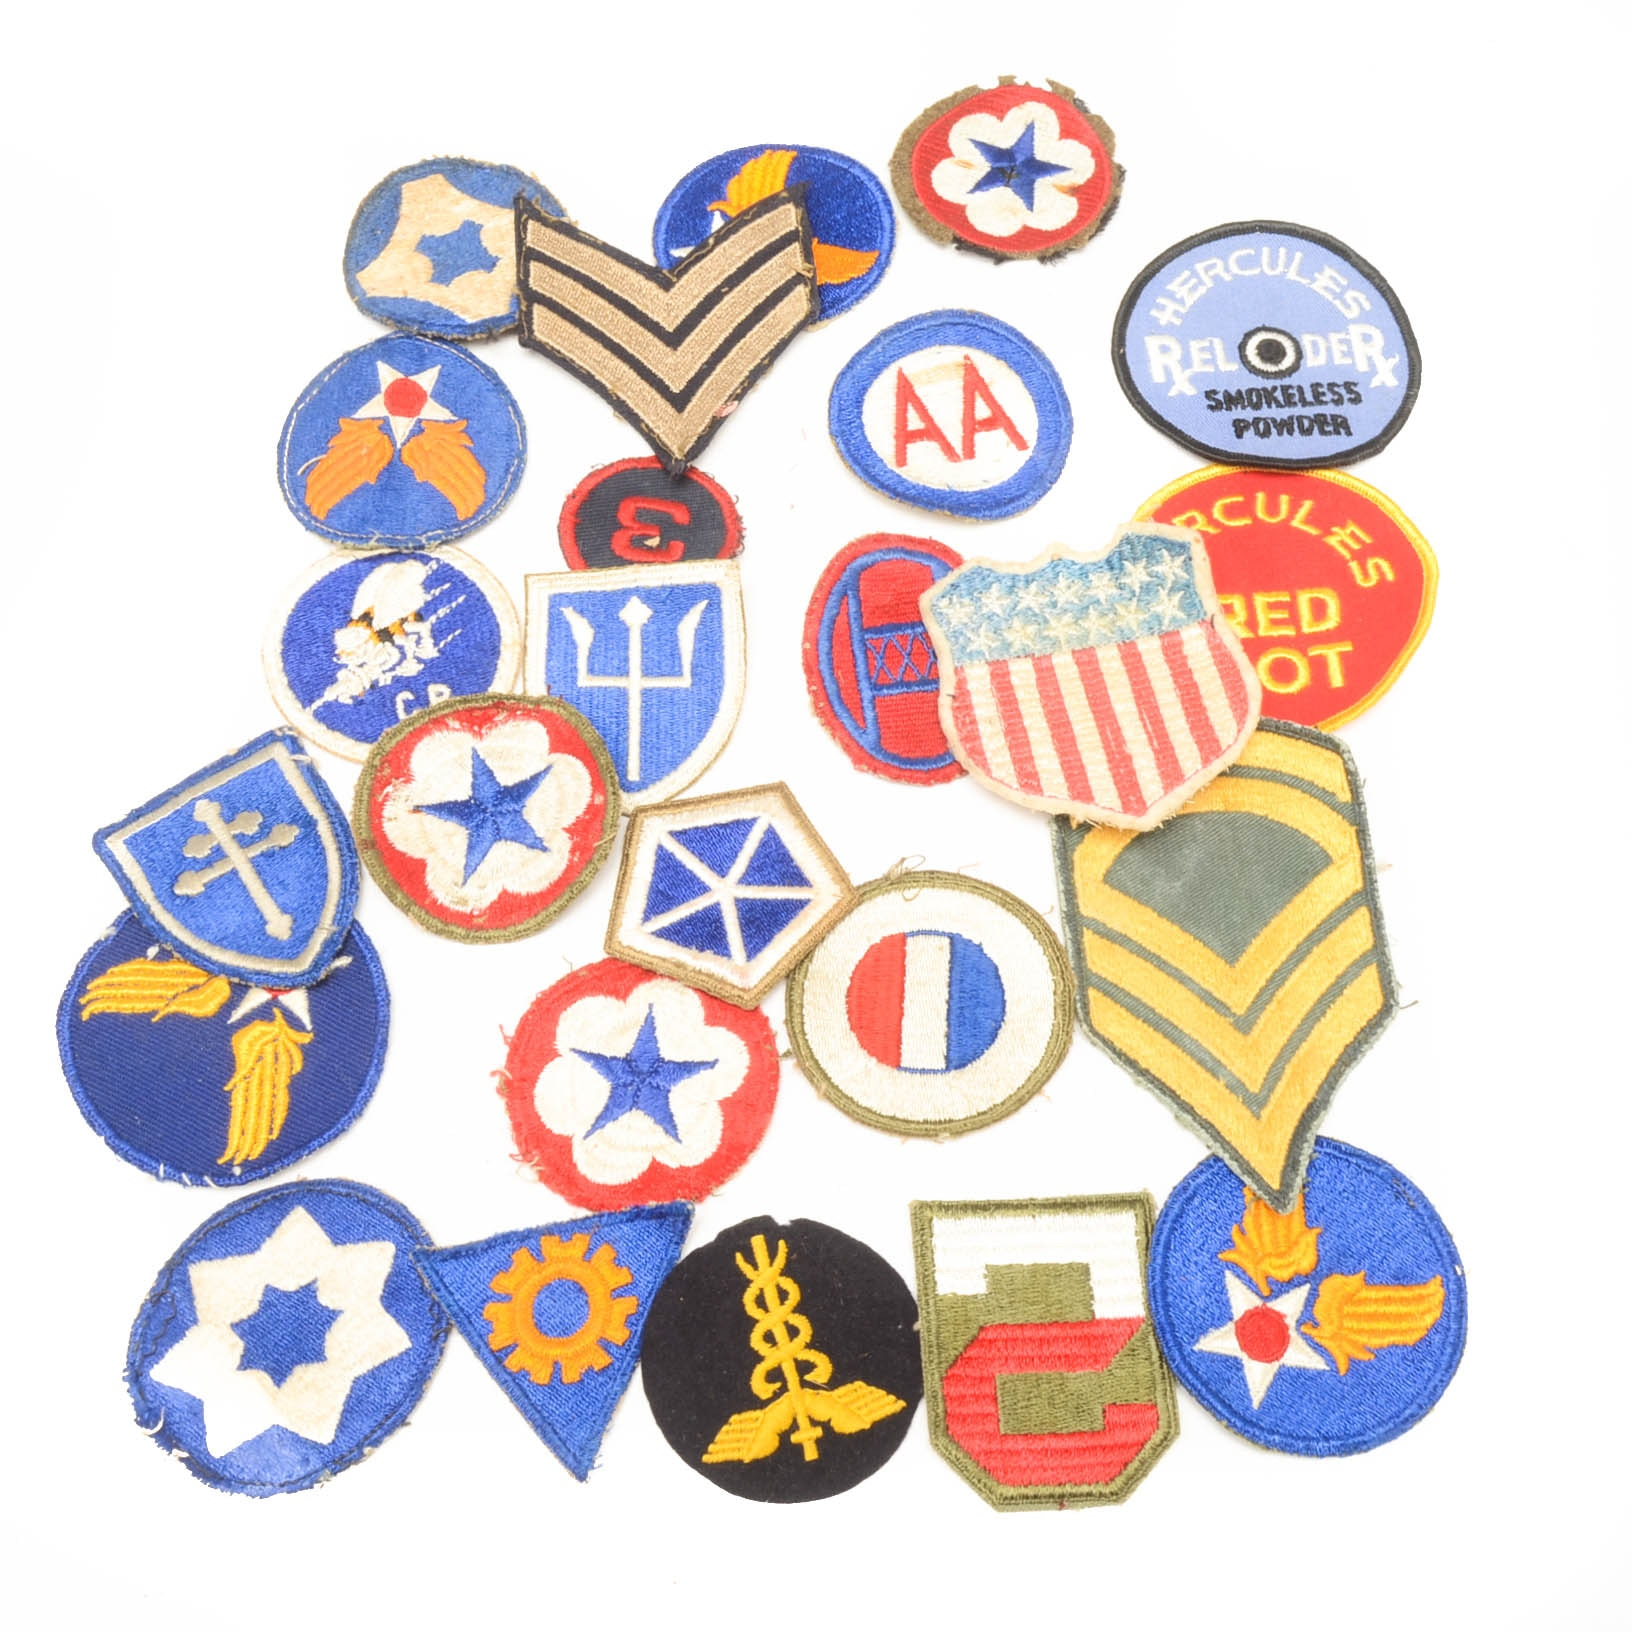 Assorted Vintage United States Military Uniform Patches